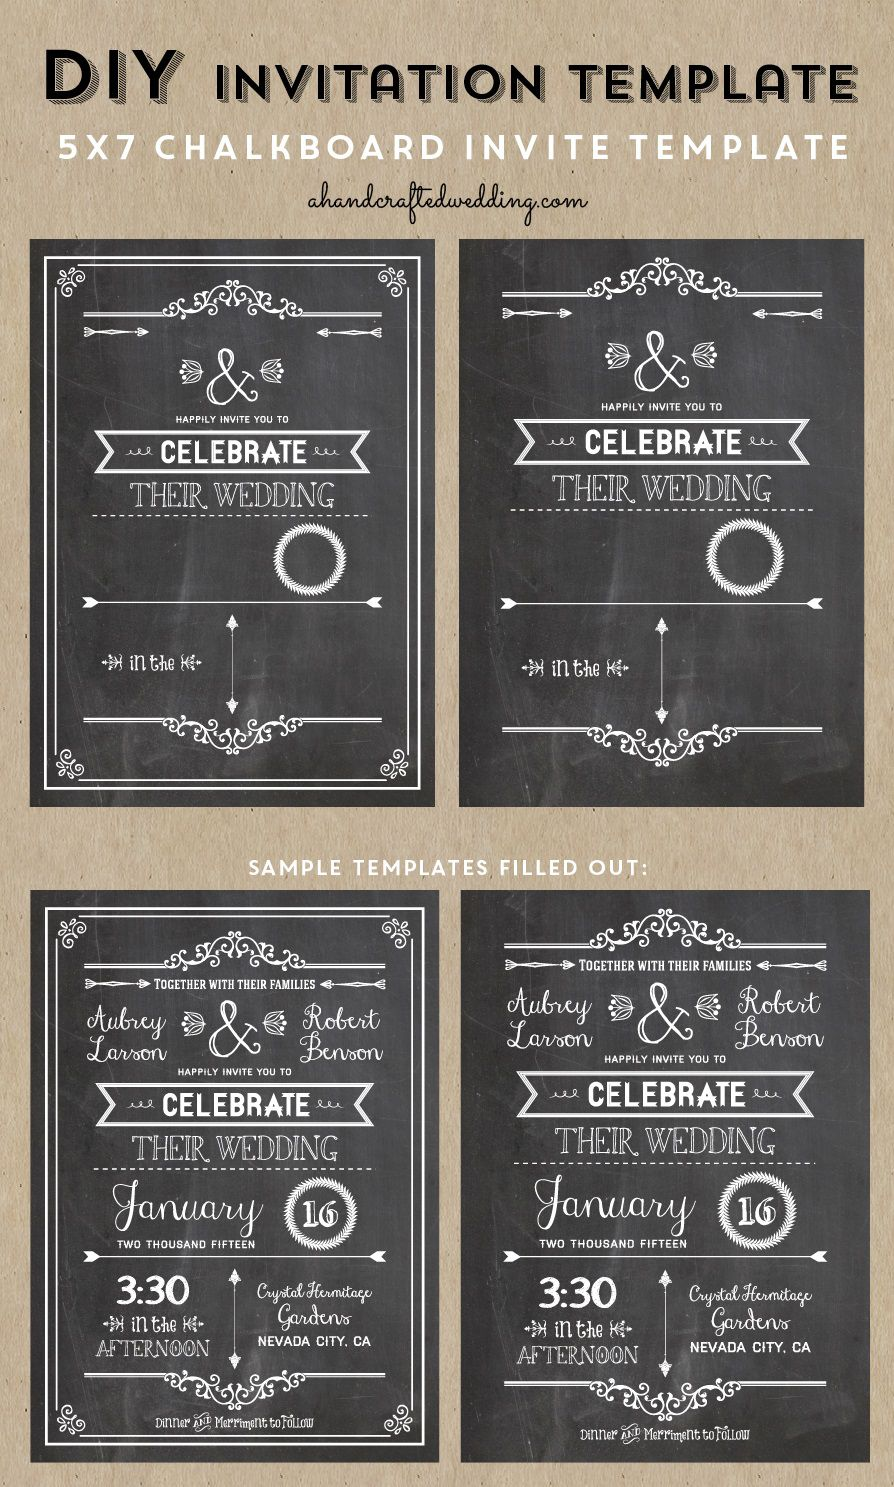 005 Wondrou Chalkboard Invitation Template Free Picture  Download BirthdayFull